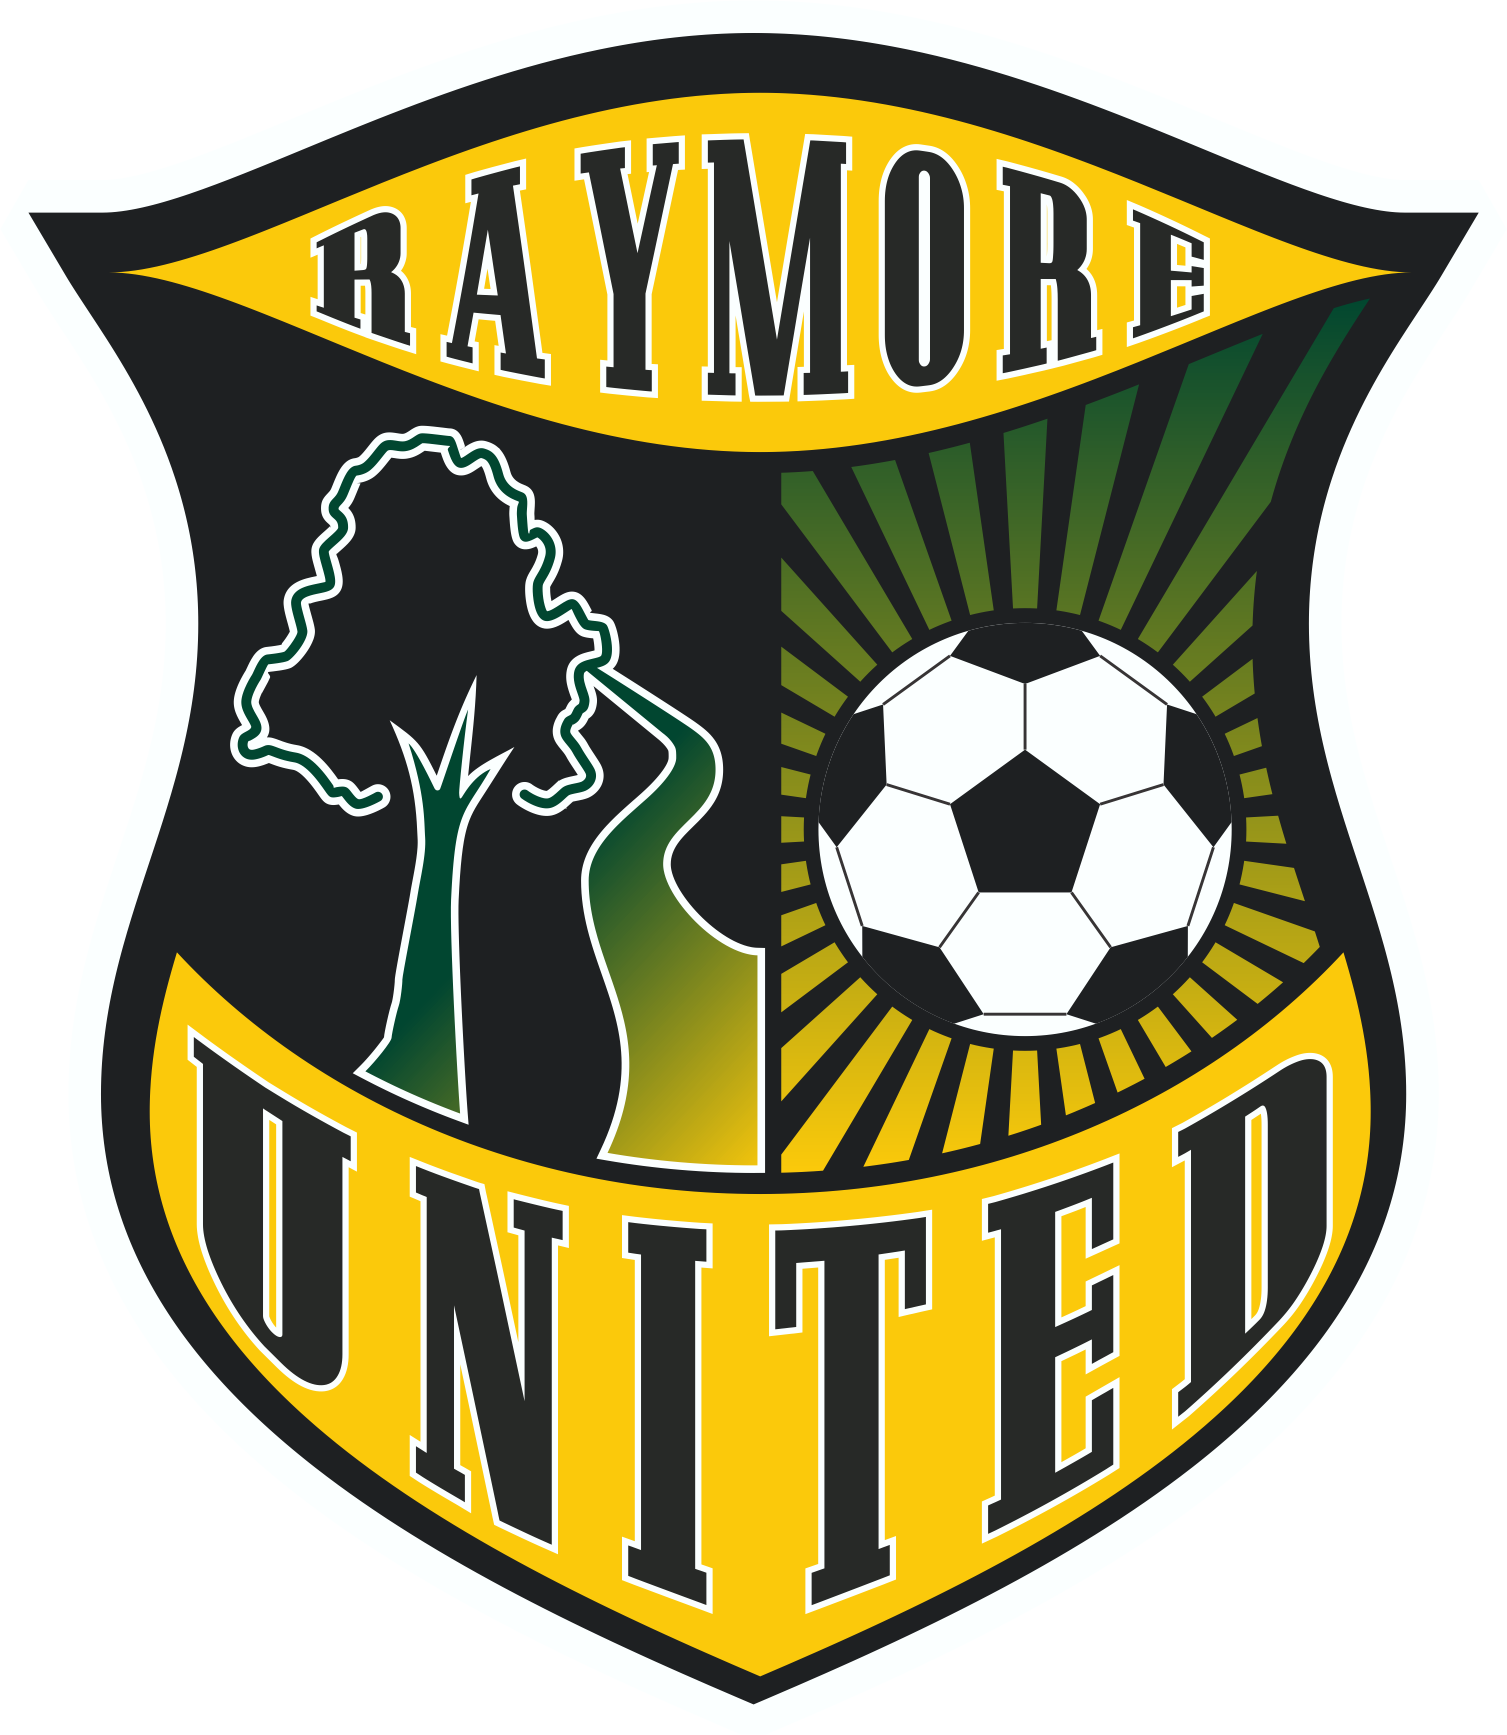 Raymore United